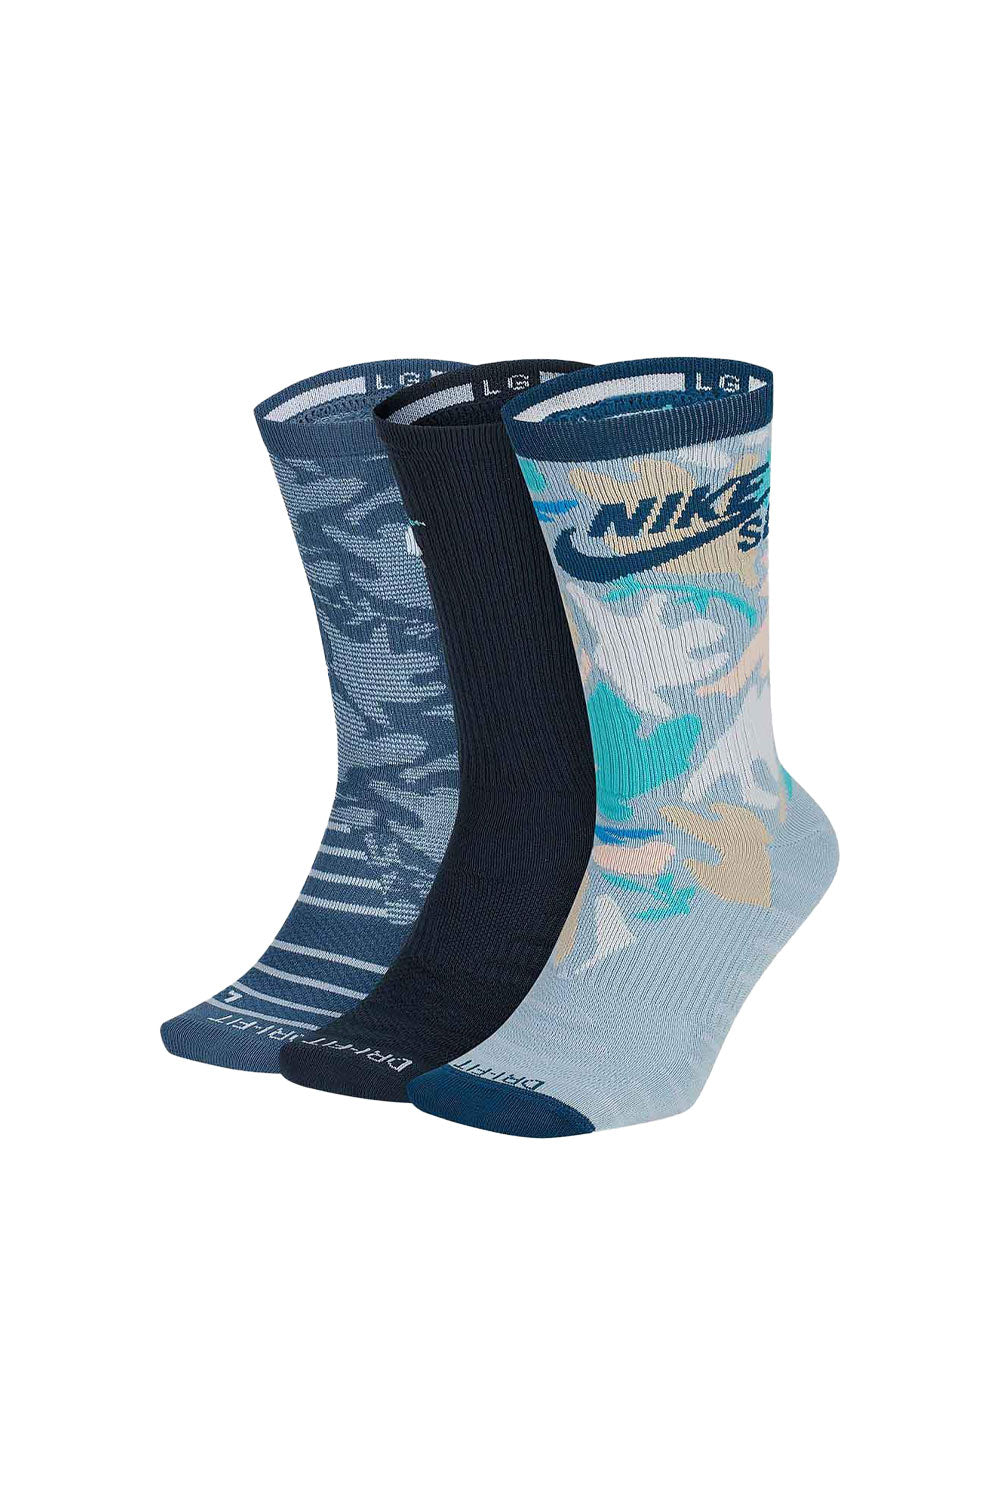 Nike SB Everyday Max Lightweight Socks - 3 Pack